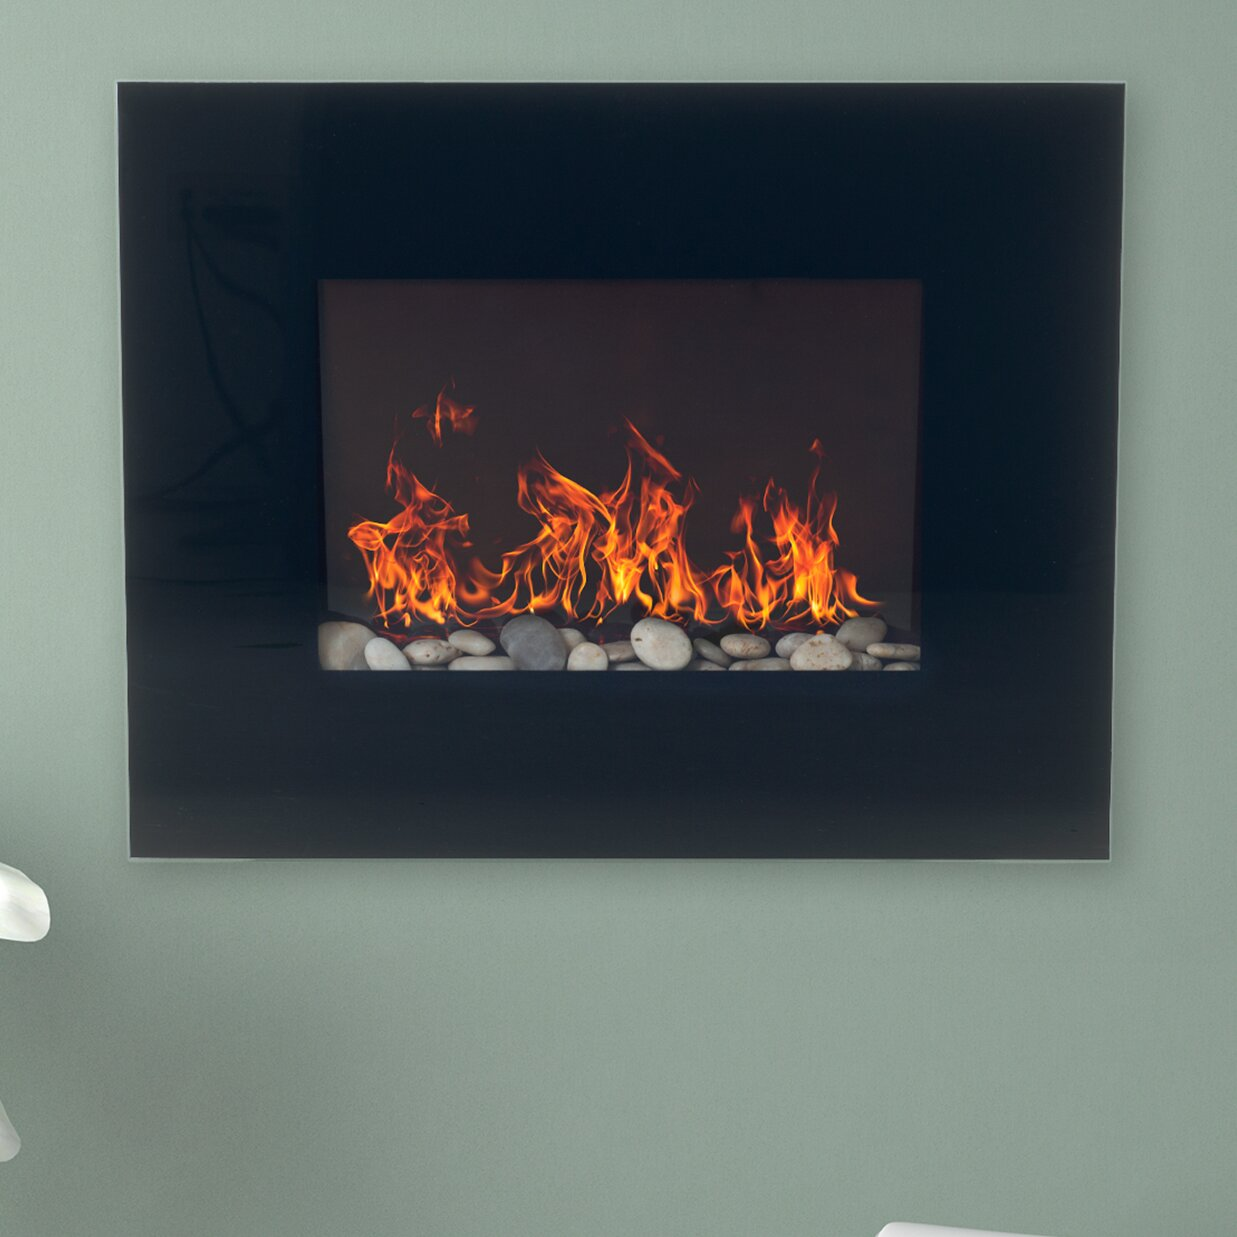 Northwest Wall Mount Electric Fireplace - Northwest Wall Mount Electric Fireplace & Reviews Wayfair